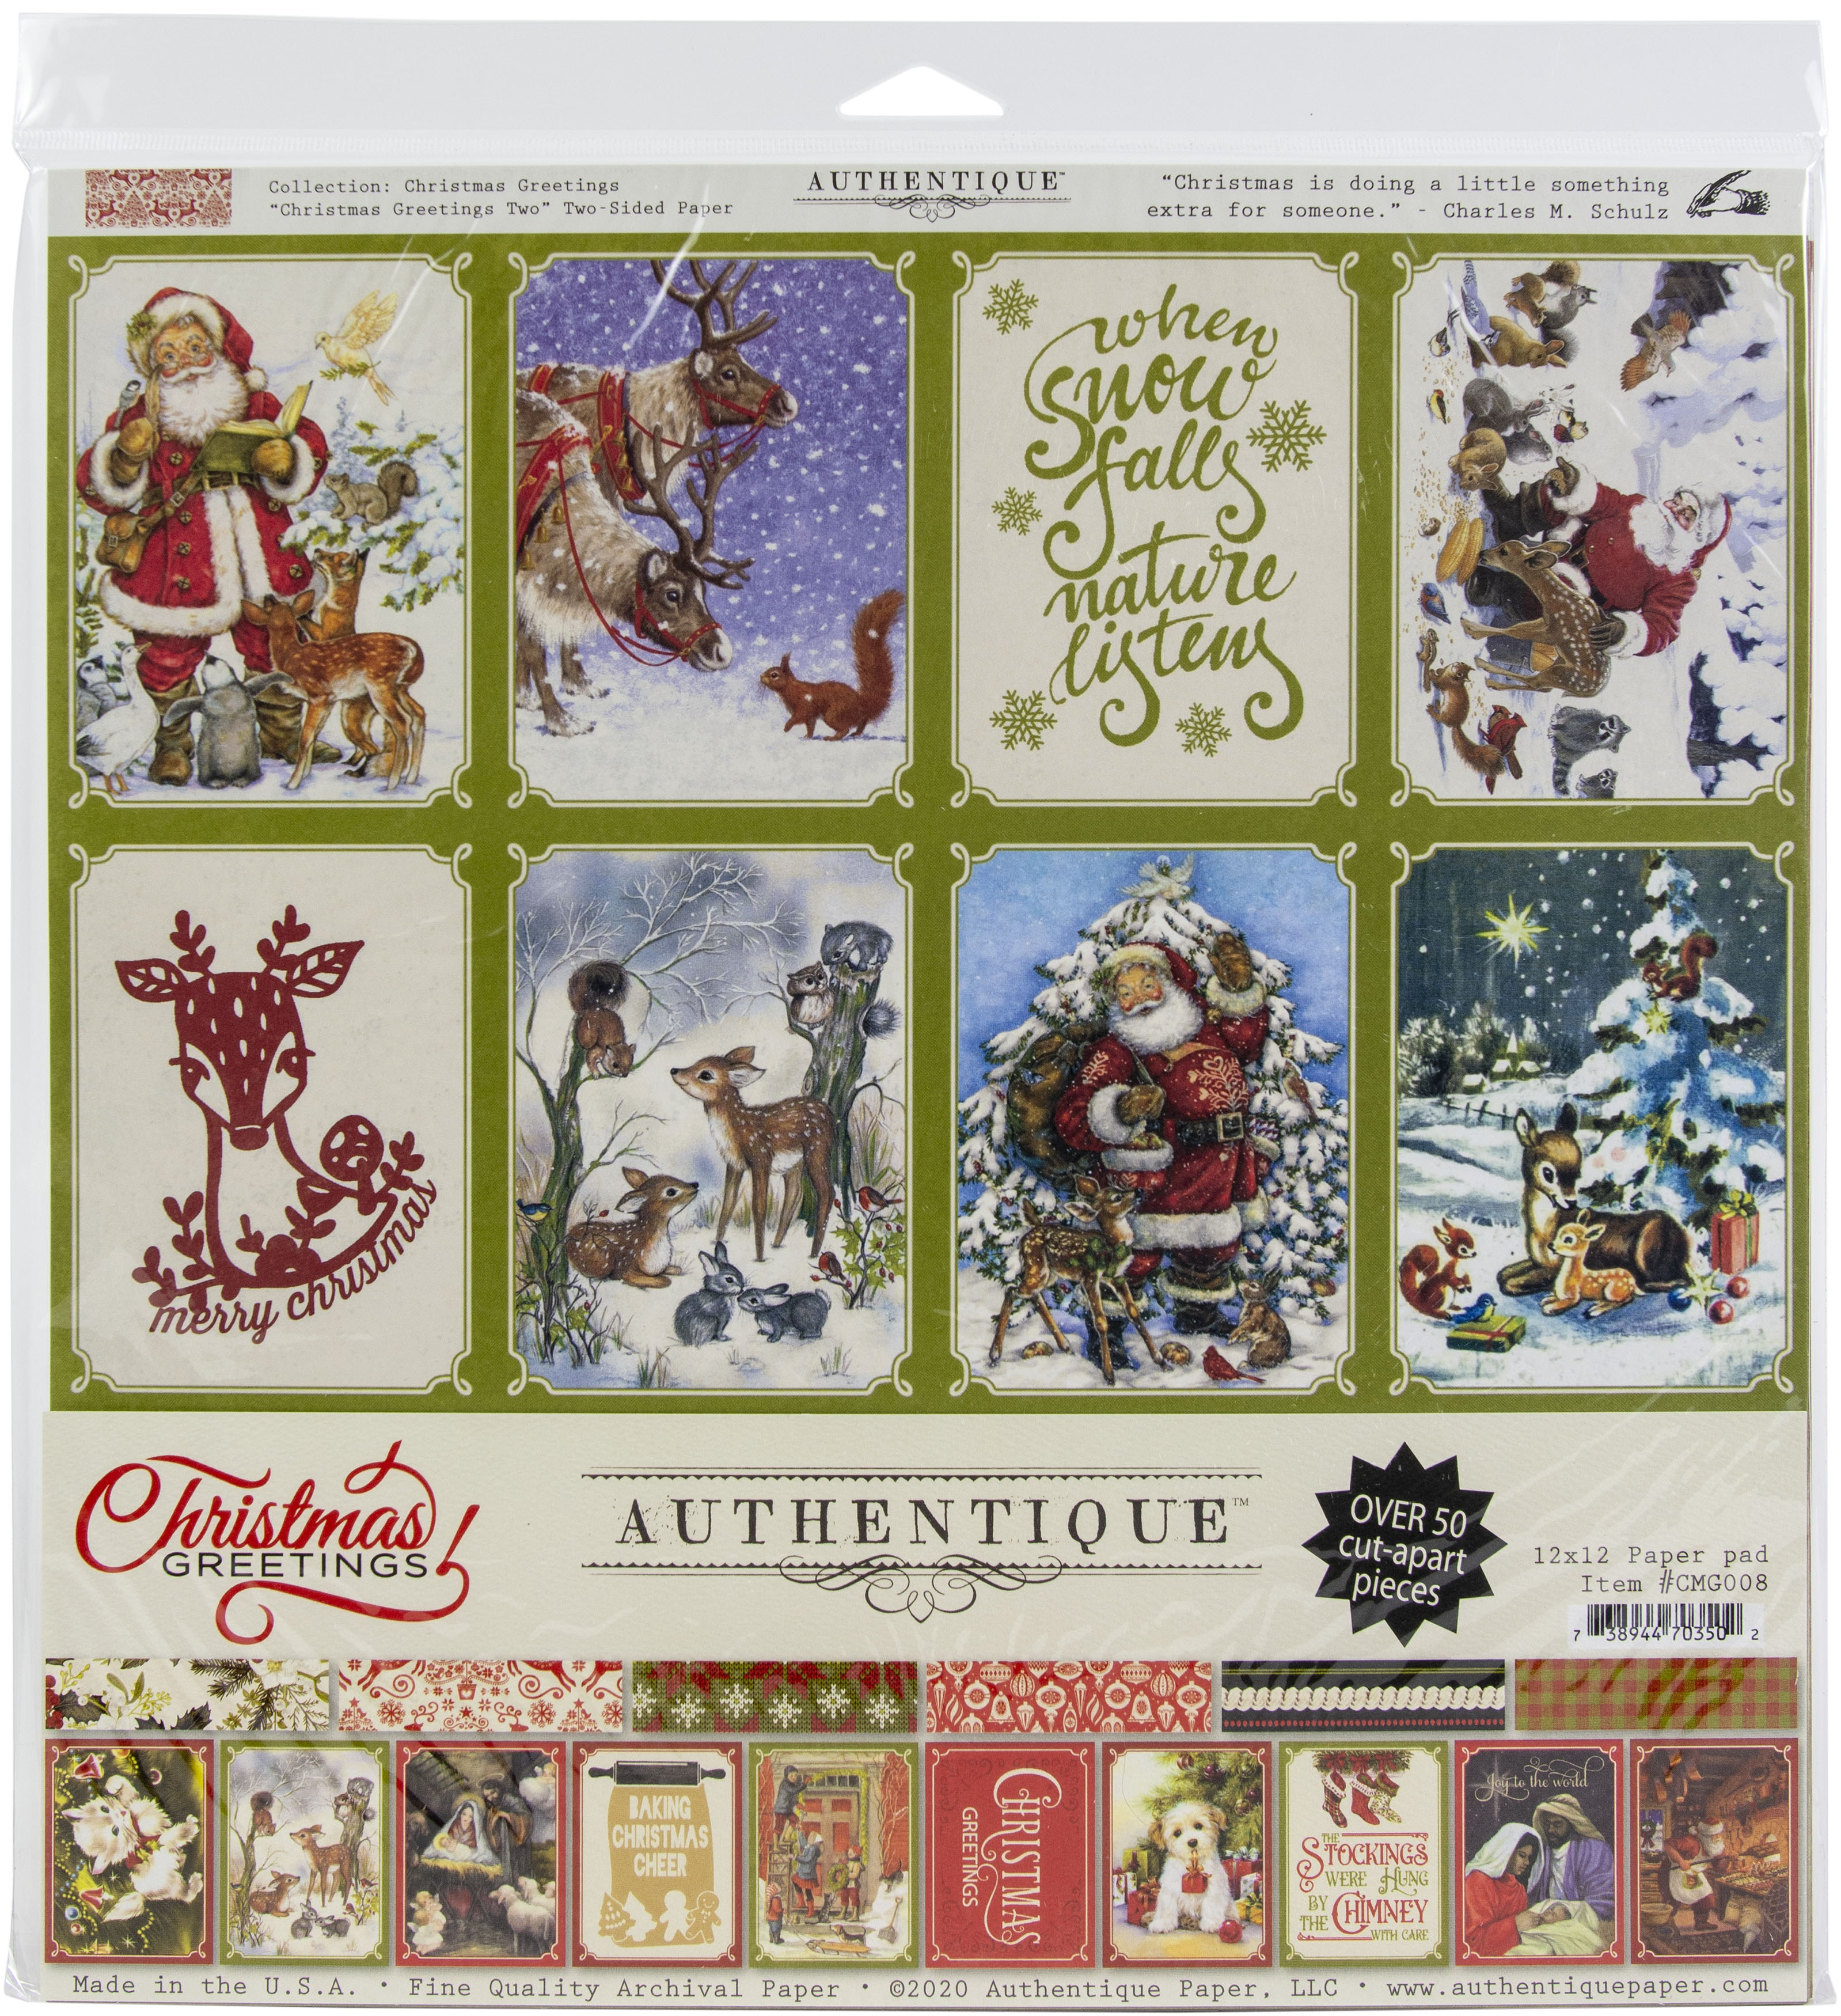 Authentique Double-Sided Cardstock Pad 12X12 18/Pkg-Christmas Greetings